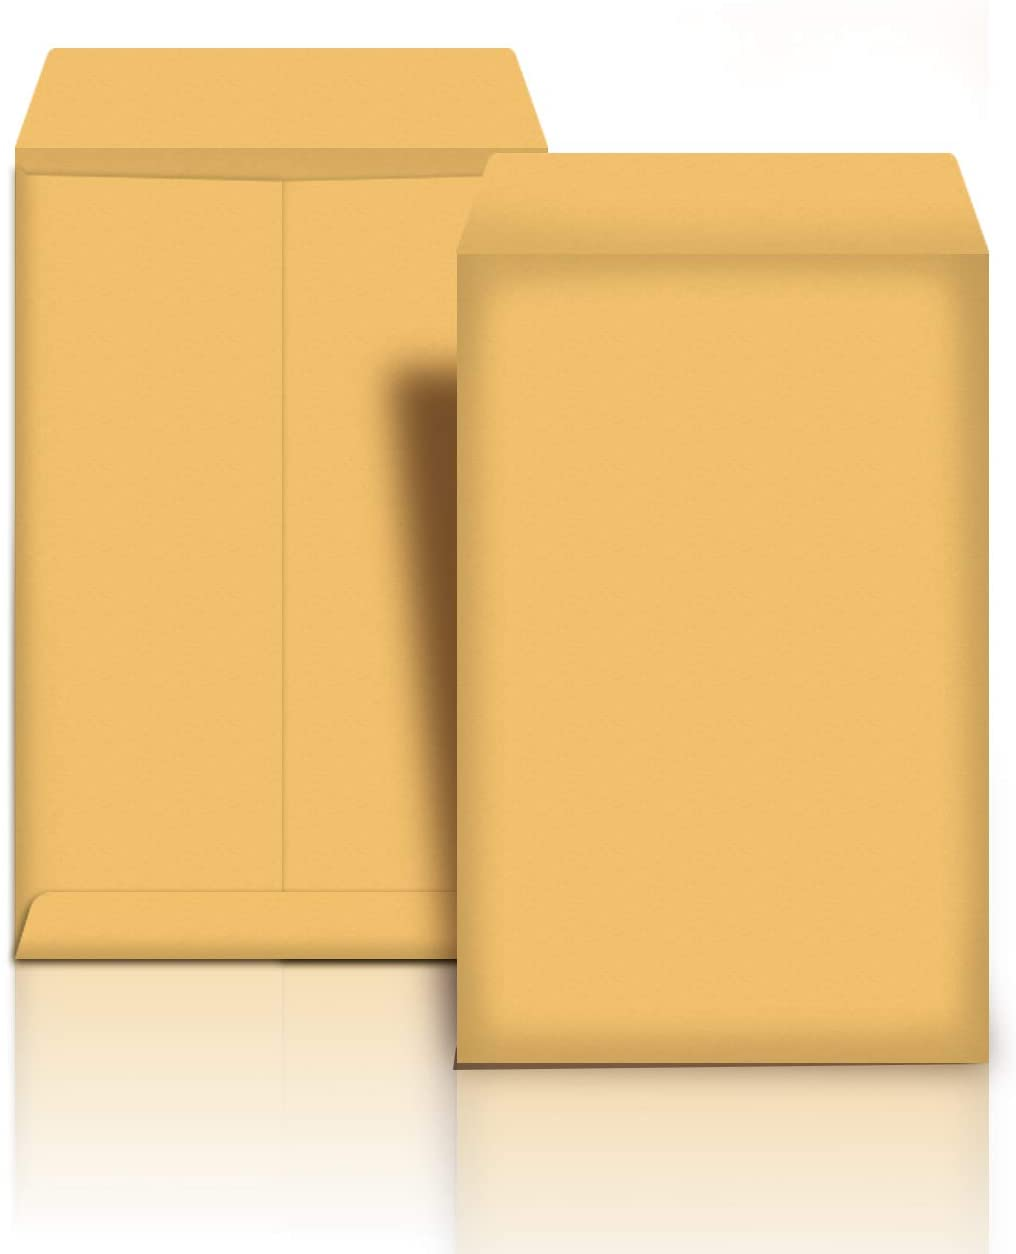 AmazonBasics Catalog Mailing Envelopes, Peel & Seal, 6x9 Inch, Brown Kraft, 100-Pack - AMZP12